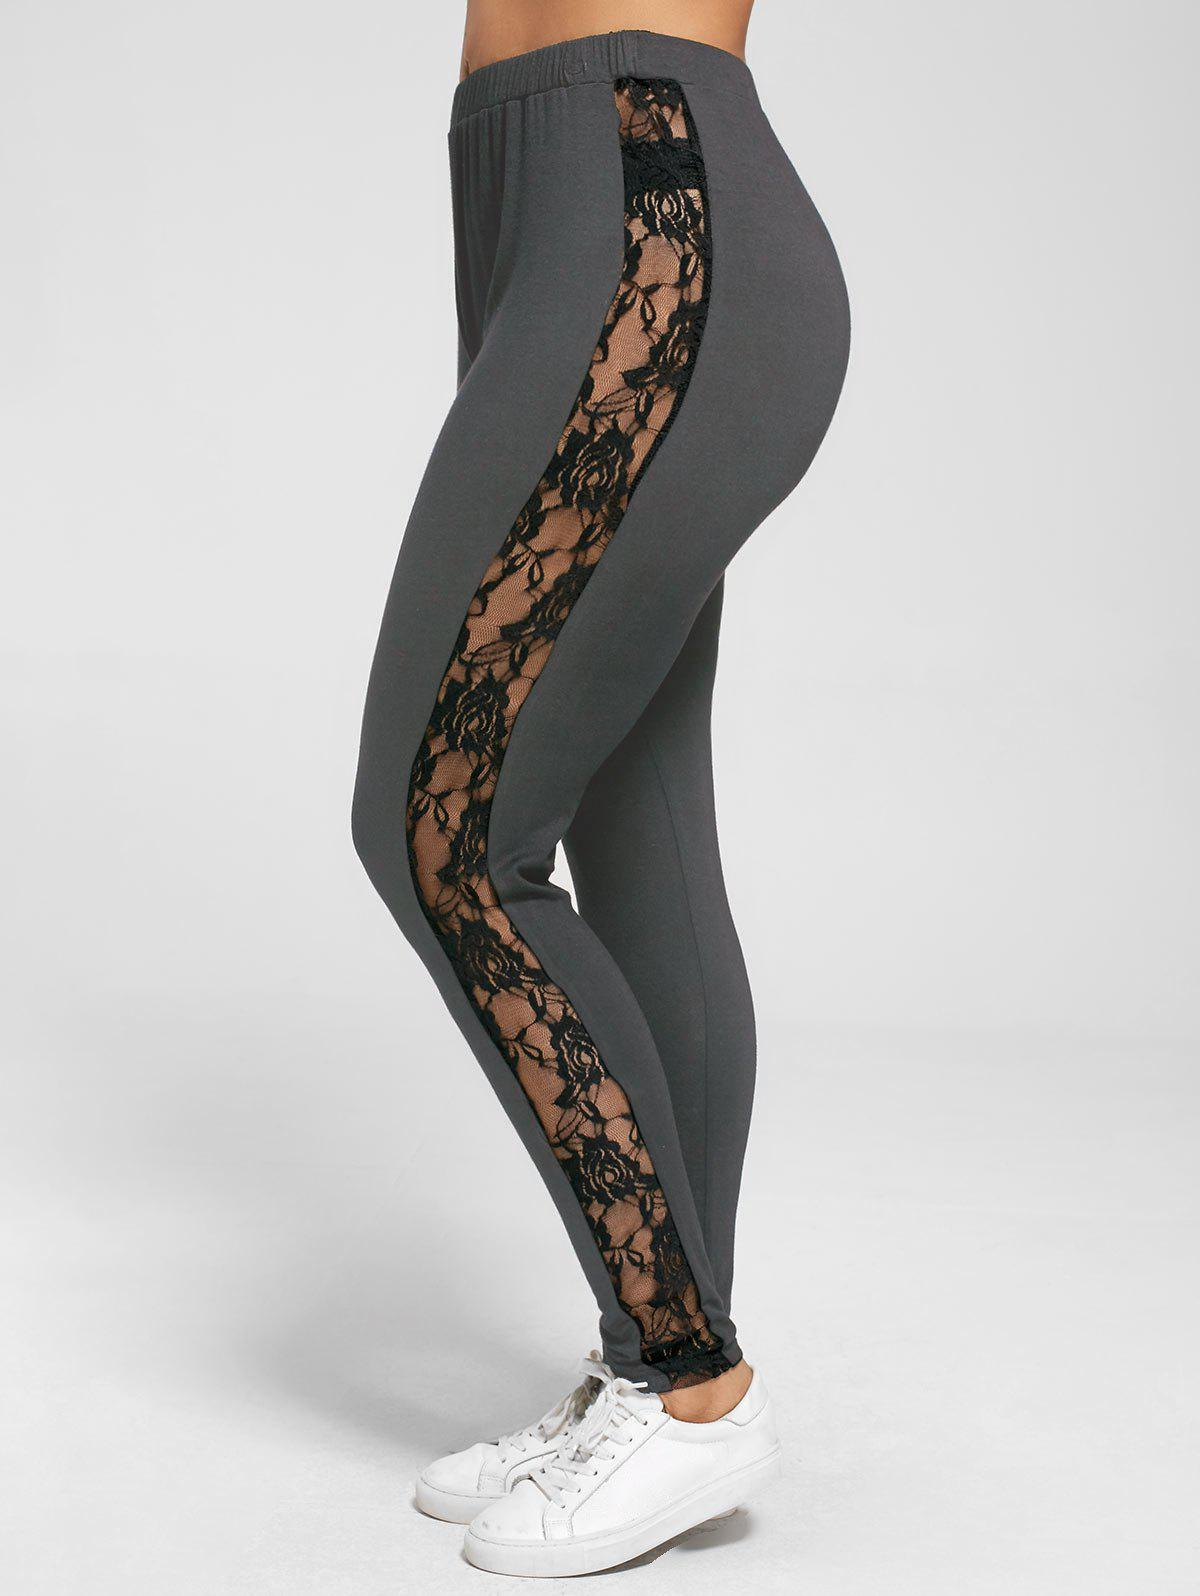 Plus Size Lace Trim Sheer LeggingsWOMEN<br><br>Size: XL; Color: DEEP GRAY; Style: Casual; Length: Normal; Material: Rayon,Spandex; Fit Type: Skinny; Waist Type: Mid; Closure Type: Elastic Waist; Pattern Type: Floral; Embellishment: Lace; Pant Style: Pencil Pants; Weight: 0.2700kg; Package Contents: 1 x Leggings;